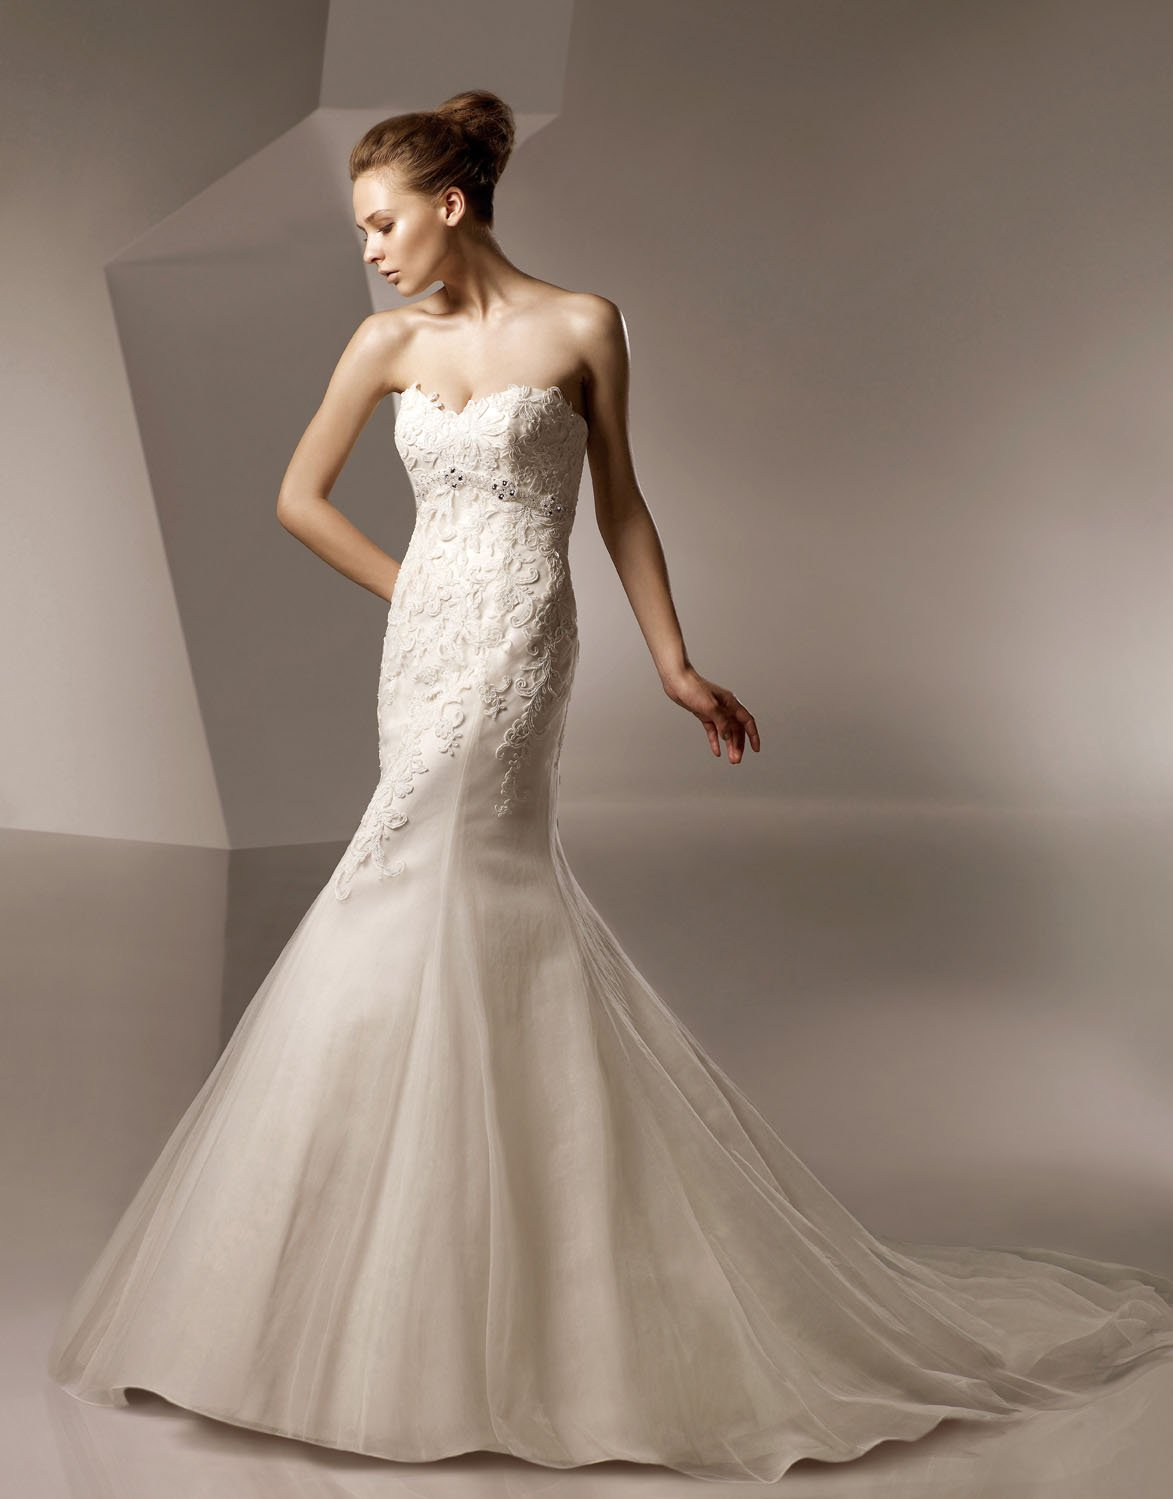 Sweetheart Mermaid Appliqued Beaded Taffeta Wedding Dress Bridal Gown